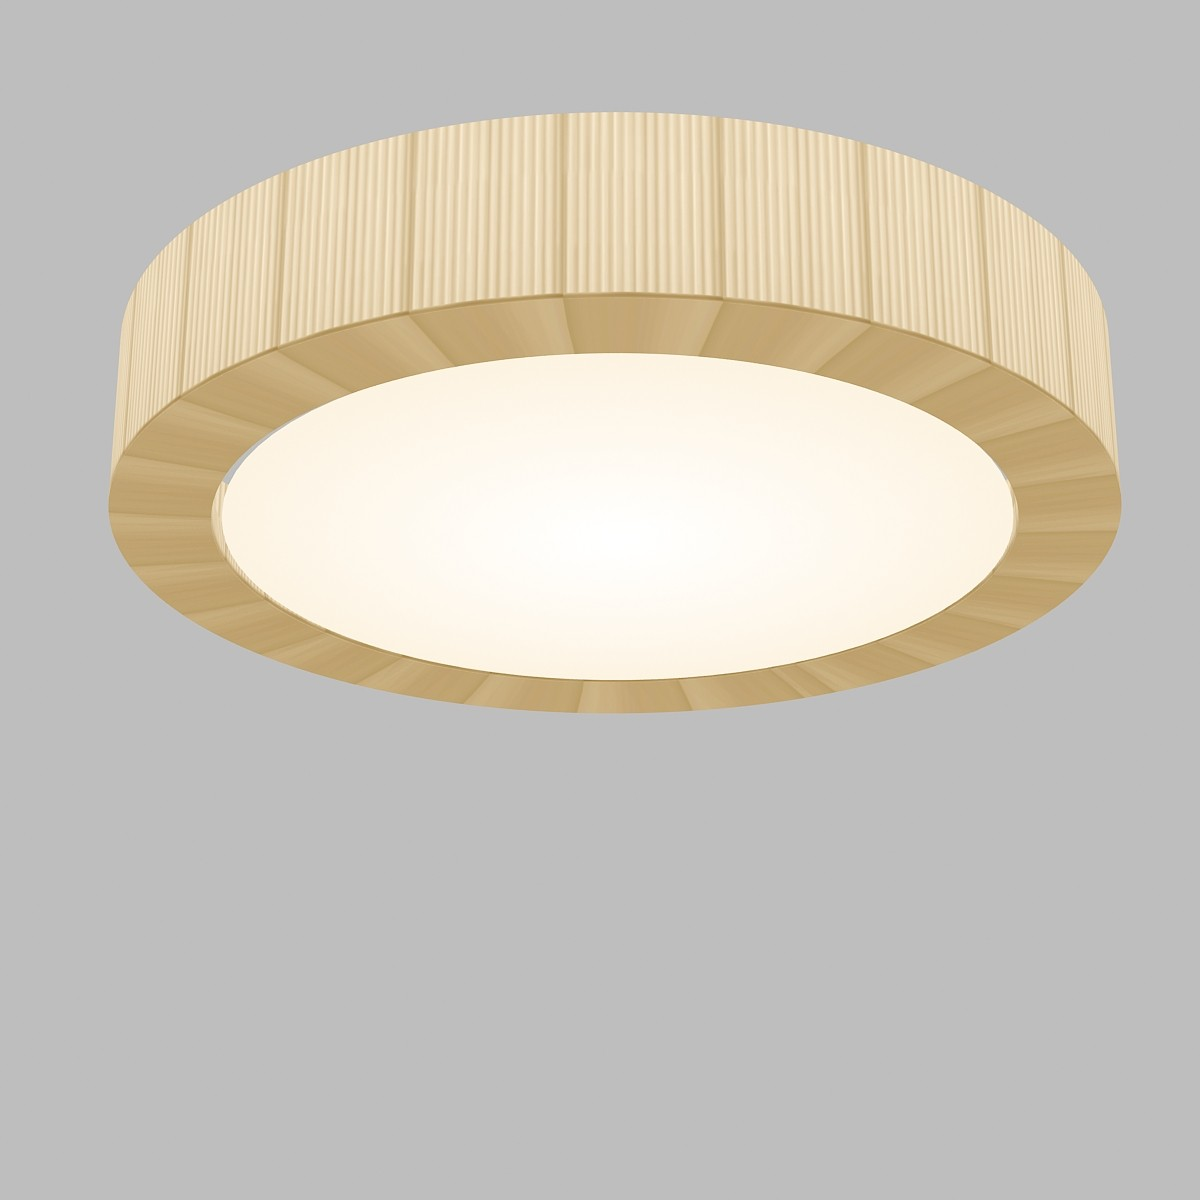 Urban - 90 ceiling lamp 2G11 24w Chrome-Cinta translucent Cream